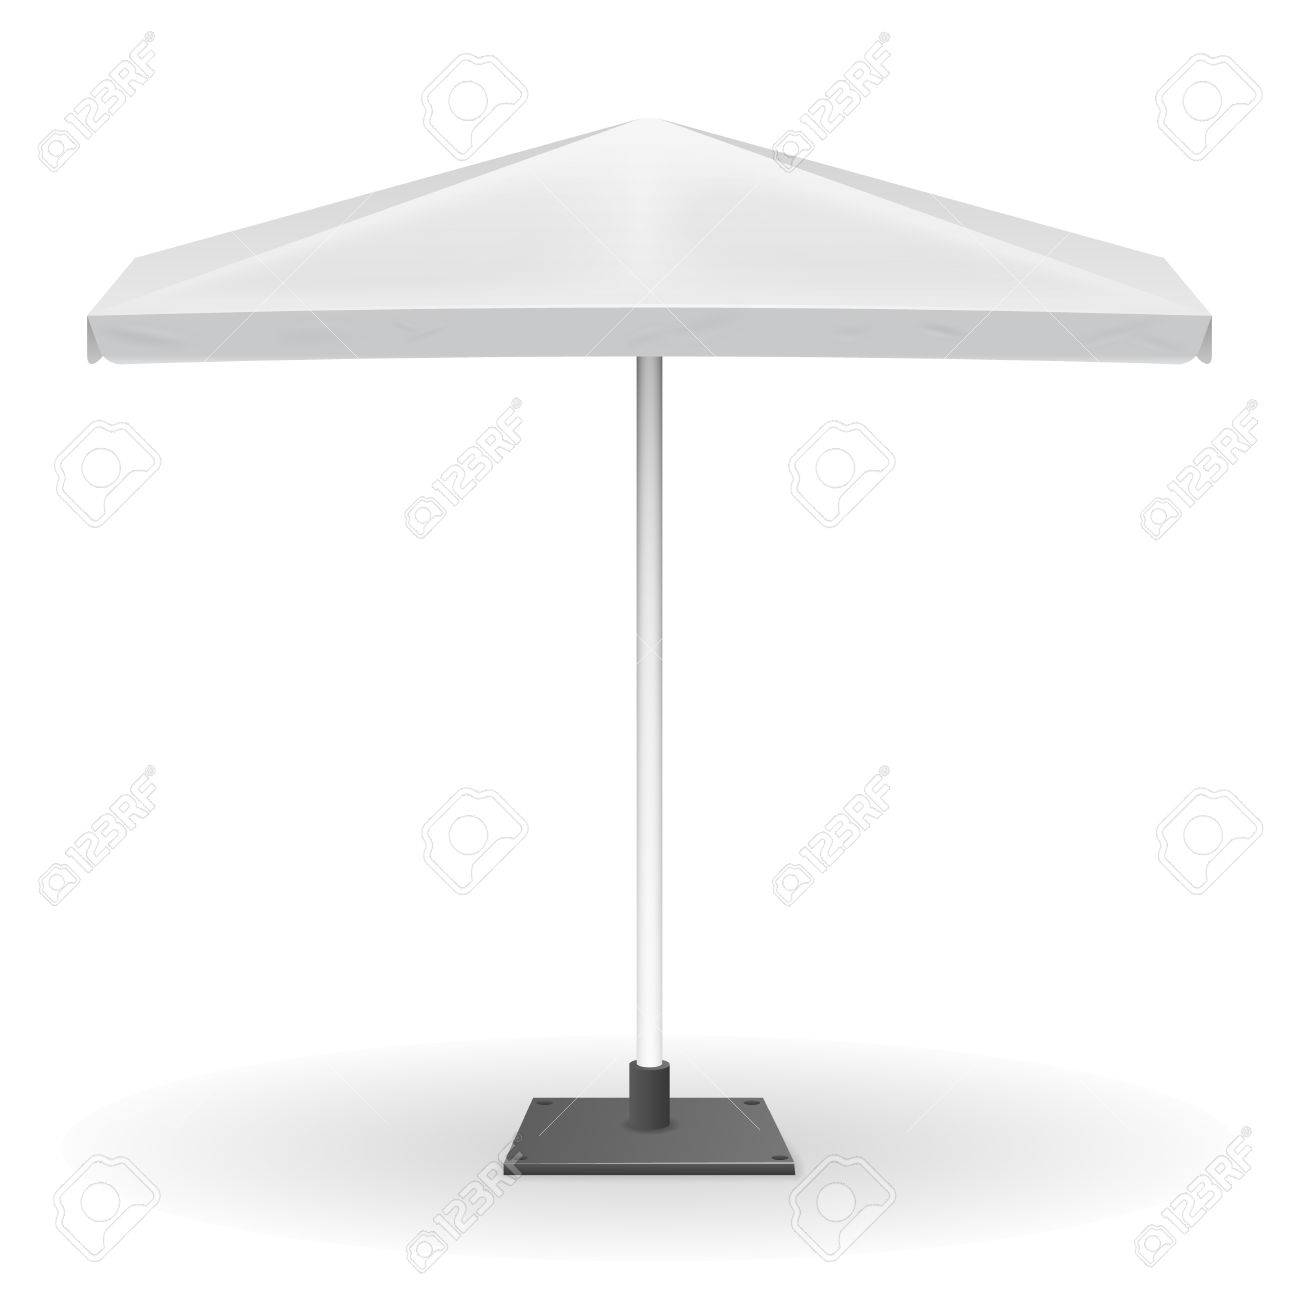 Parasol For Promo Isolated On White Background. Mock Up Of Square